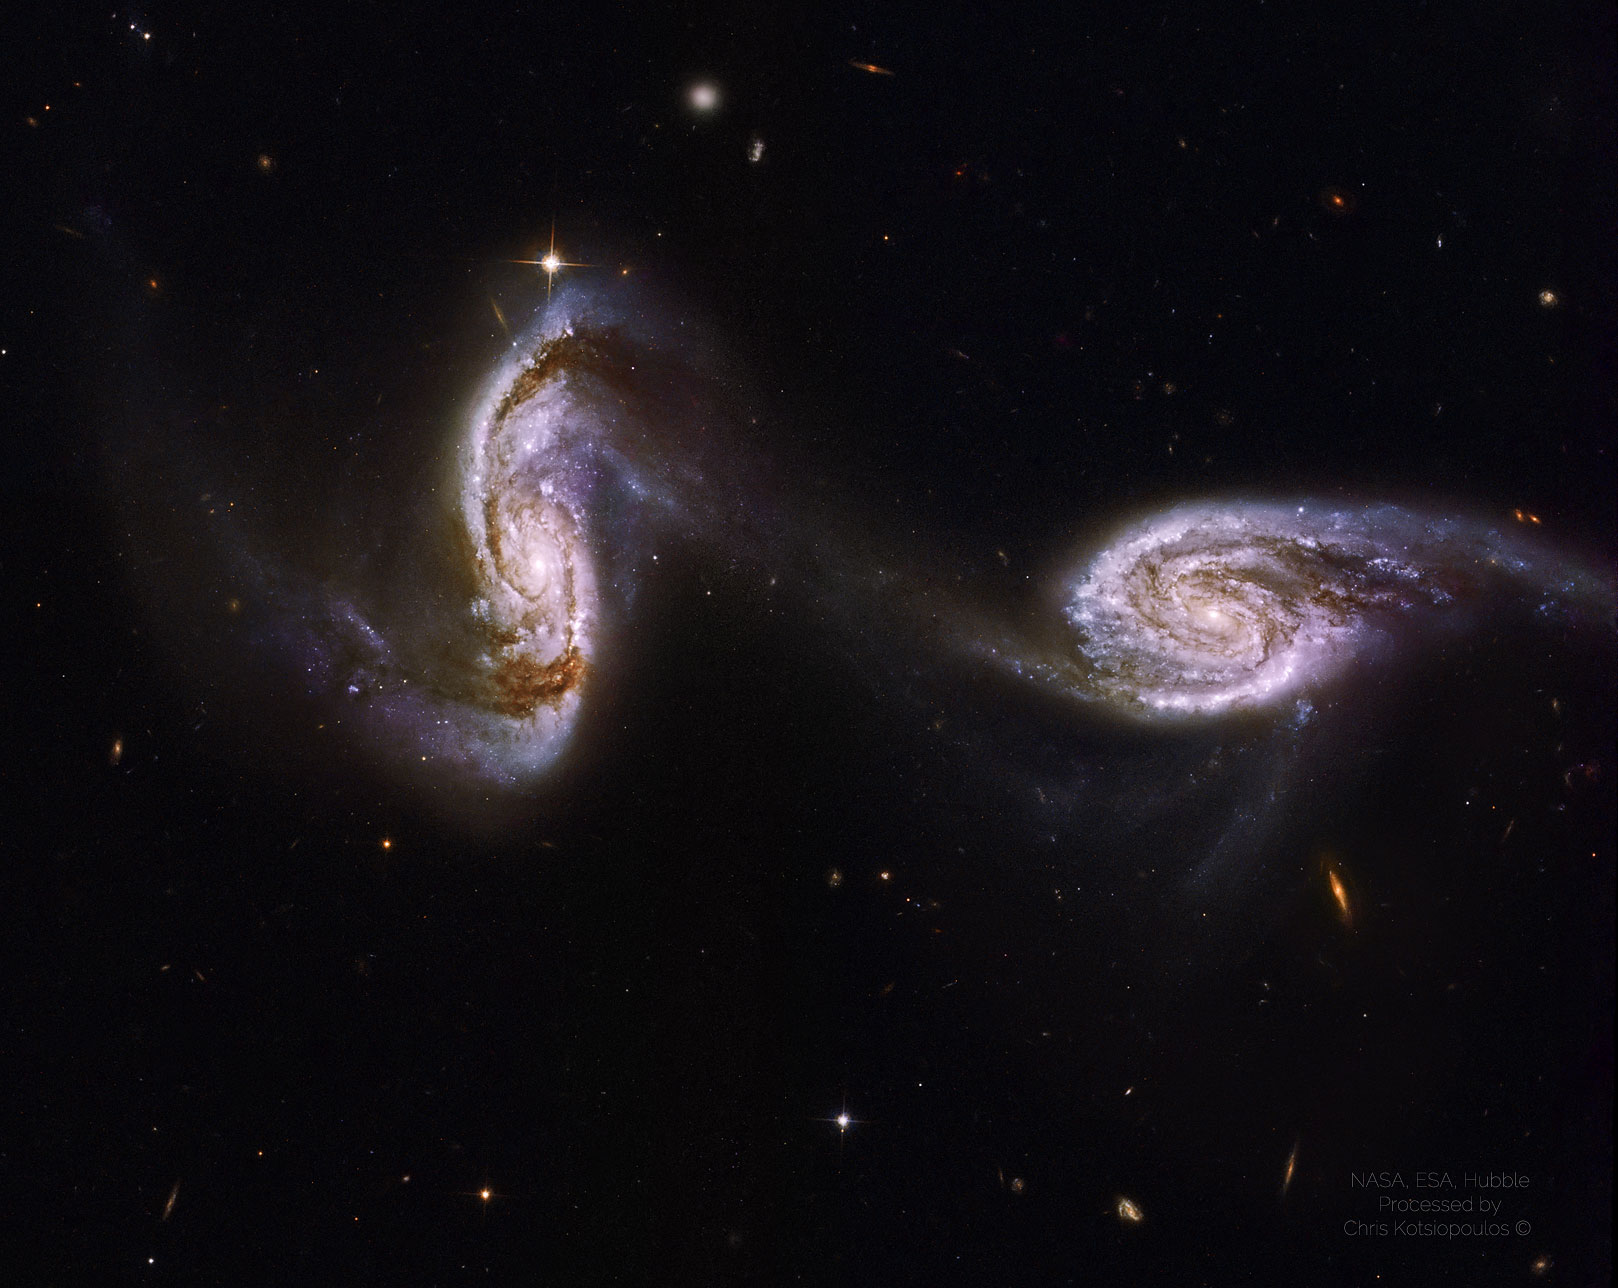 nasa galaxy pictures high resolution - photo #33